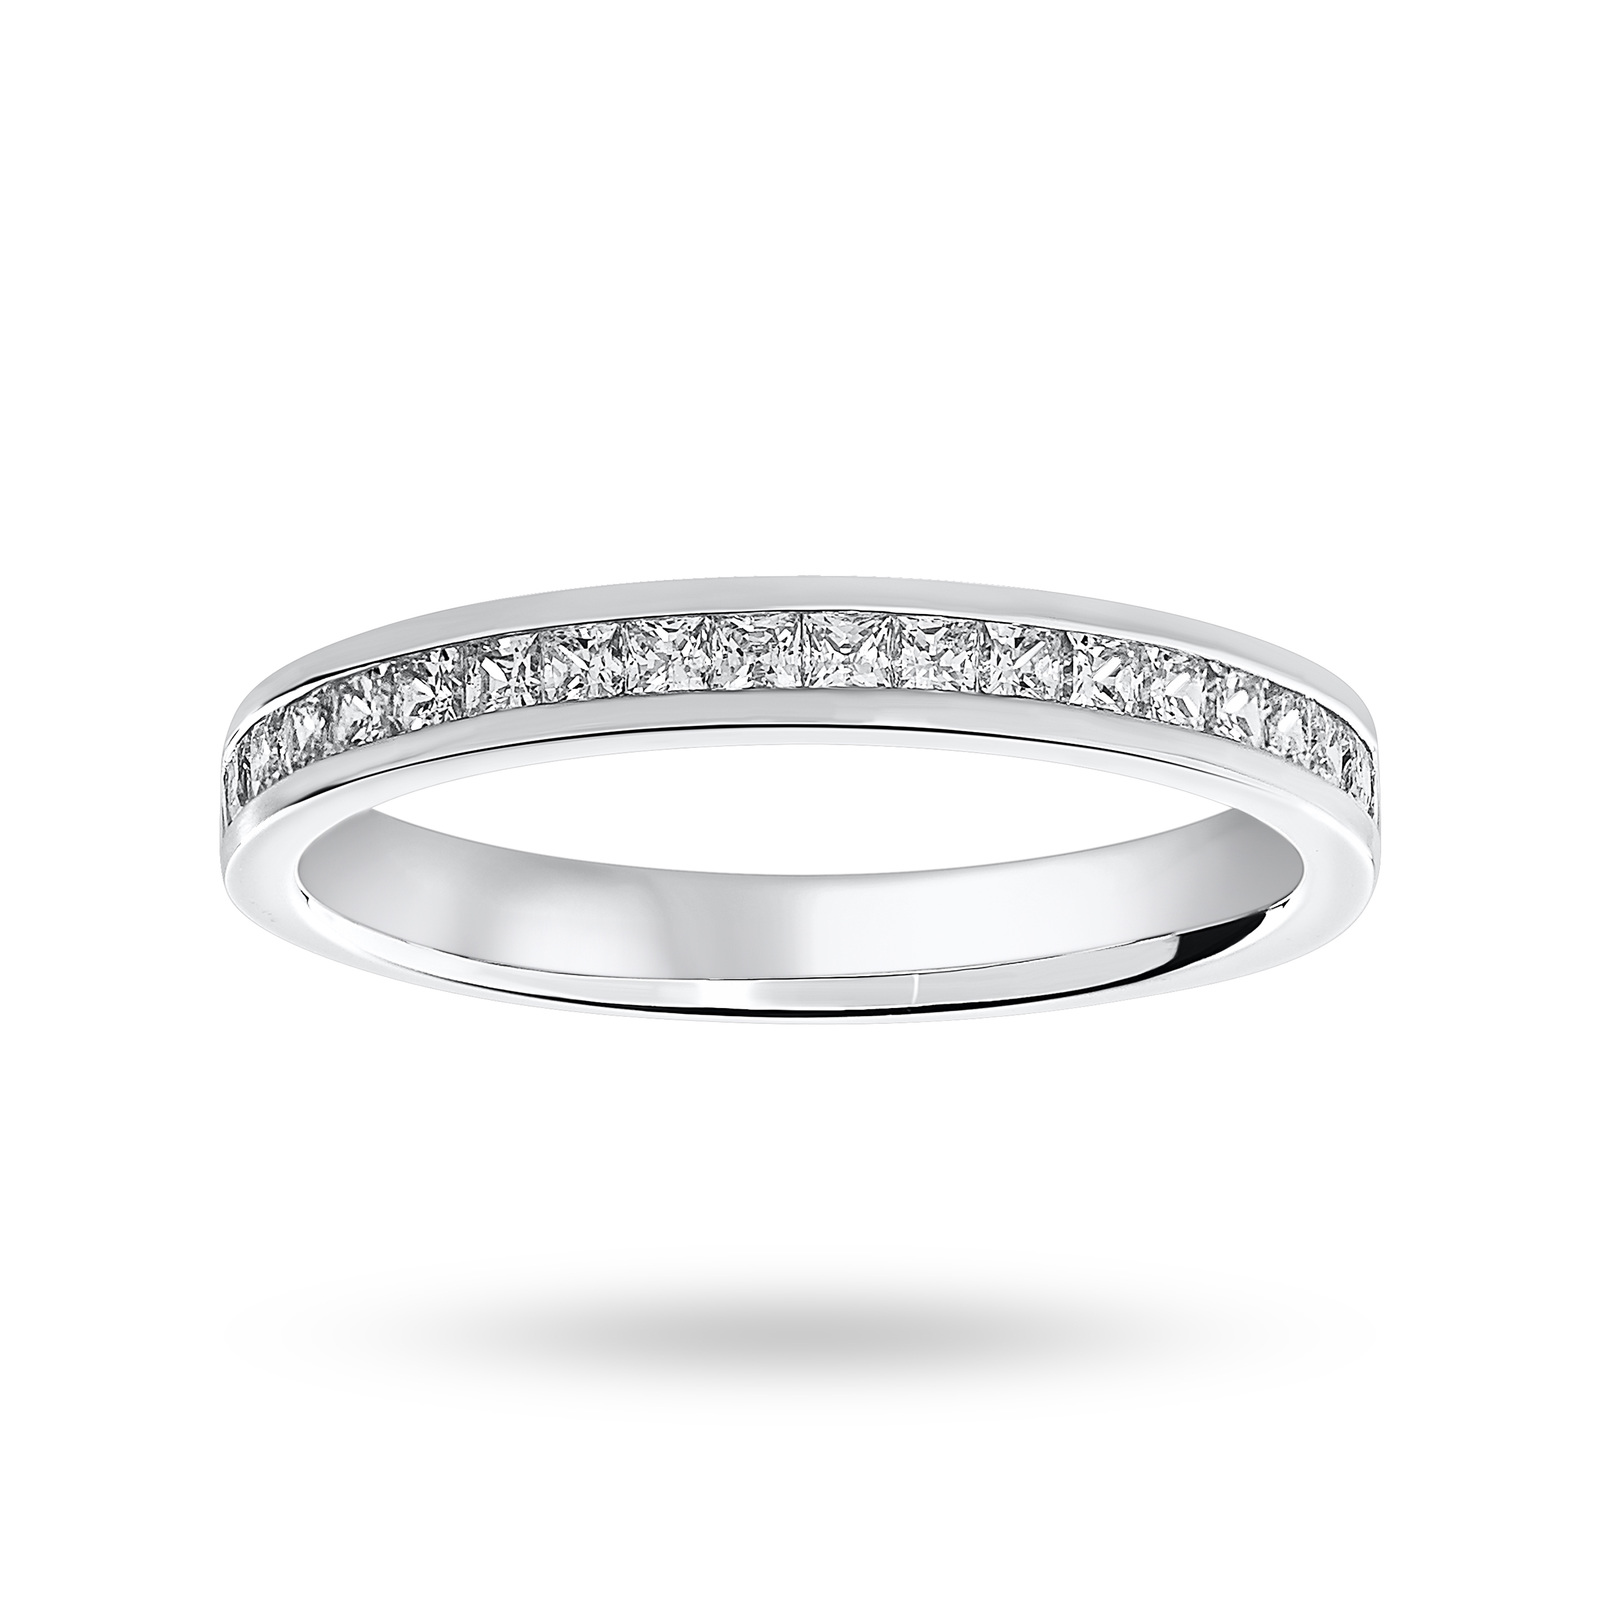 Platinum 0.50 Carat Princess Cut Half Eternity Ring